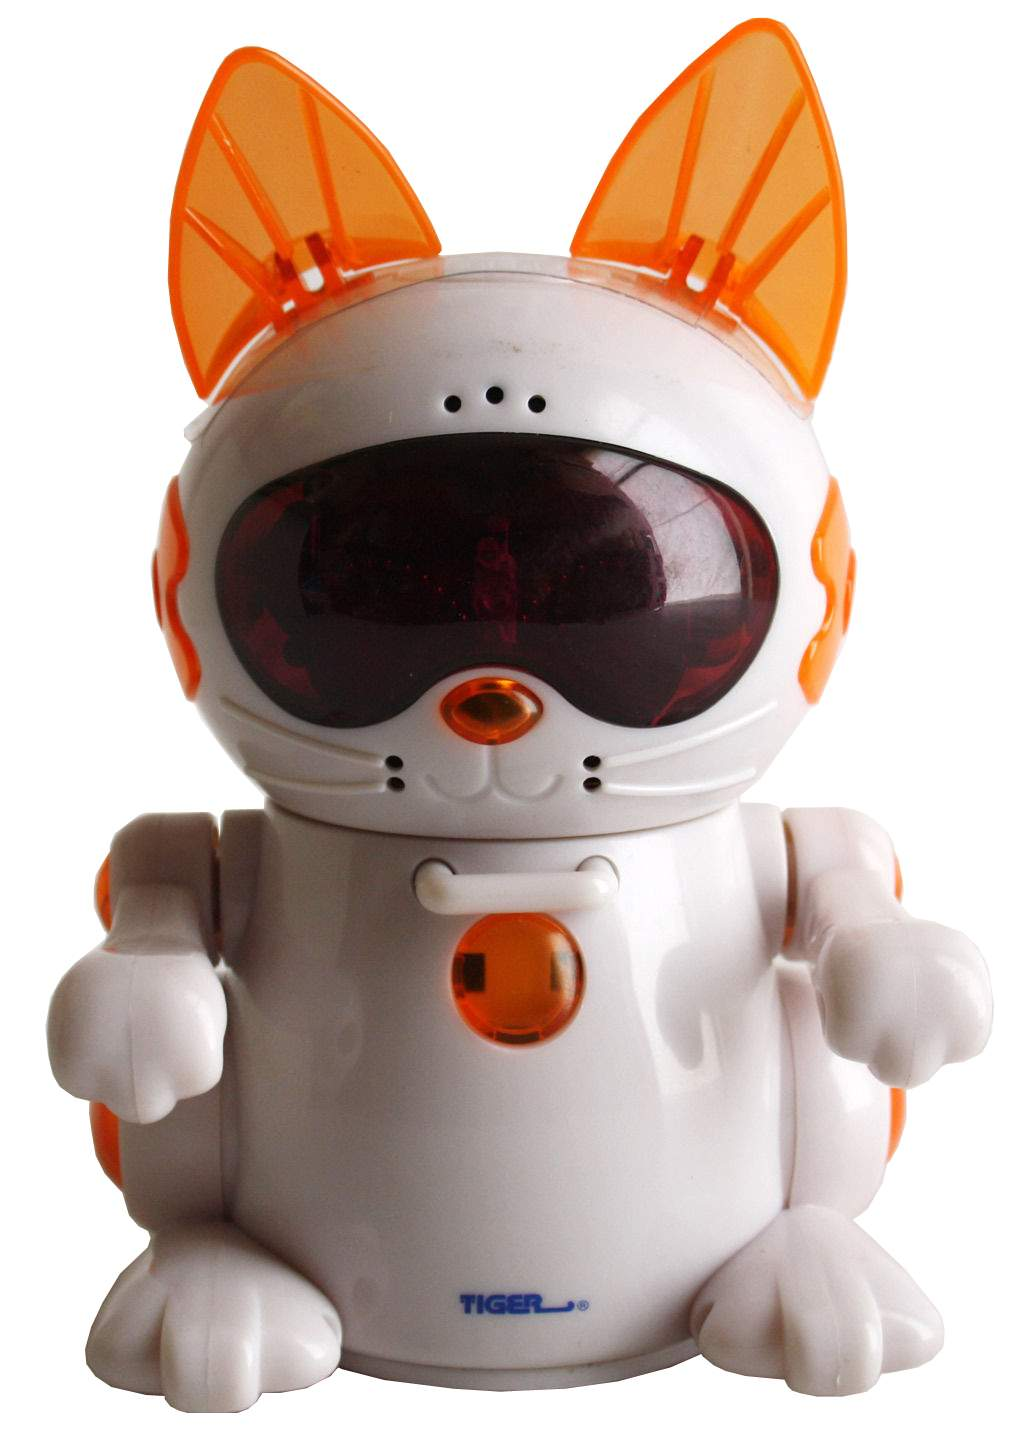 Meow Chi Robot Kitten Interactive Cat By Tiger Electronics The Old Robots Web Site